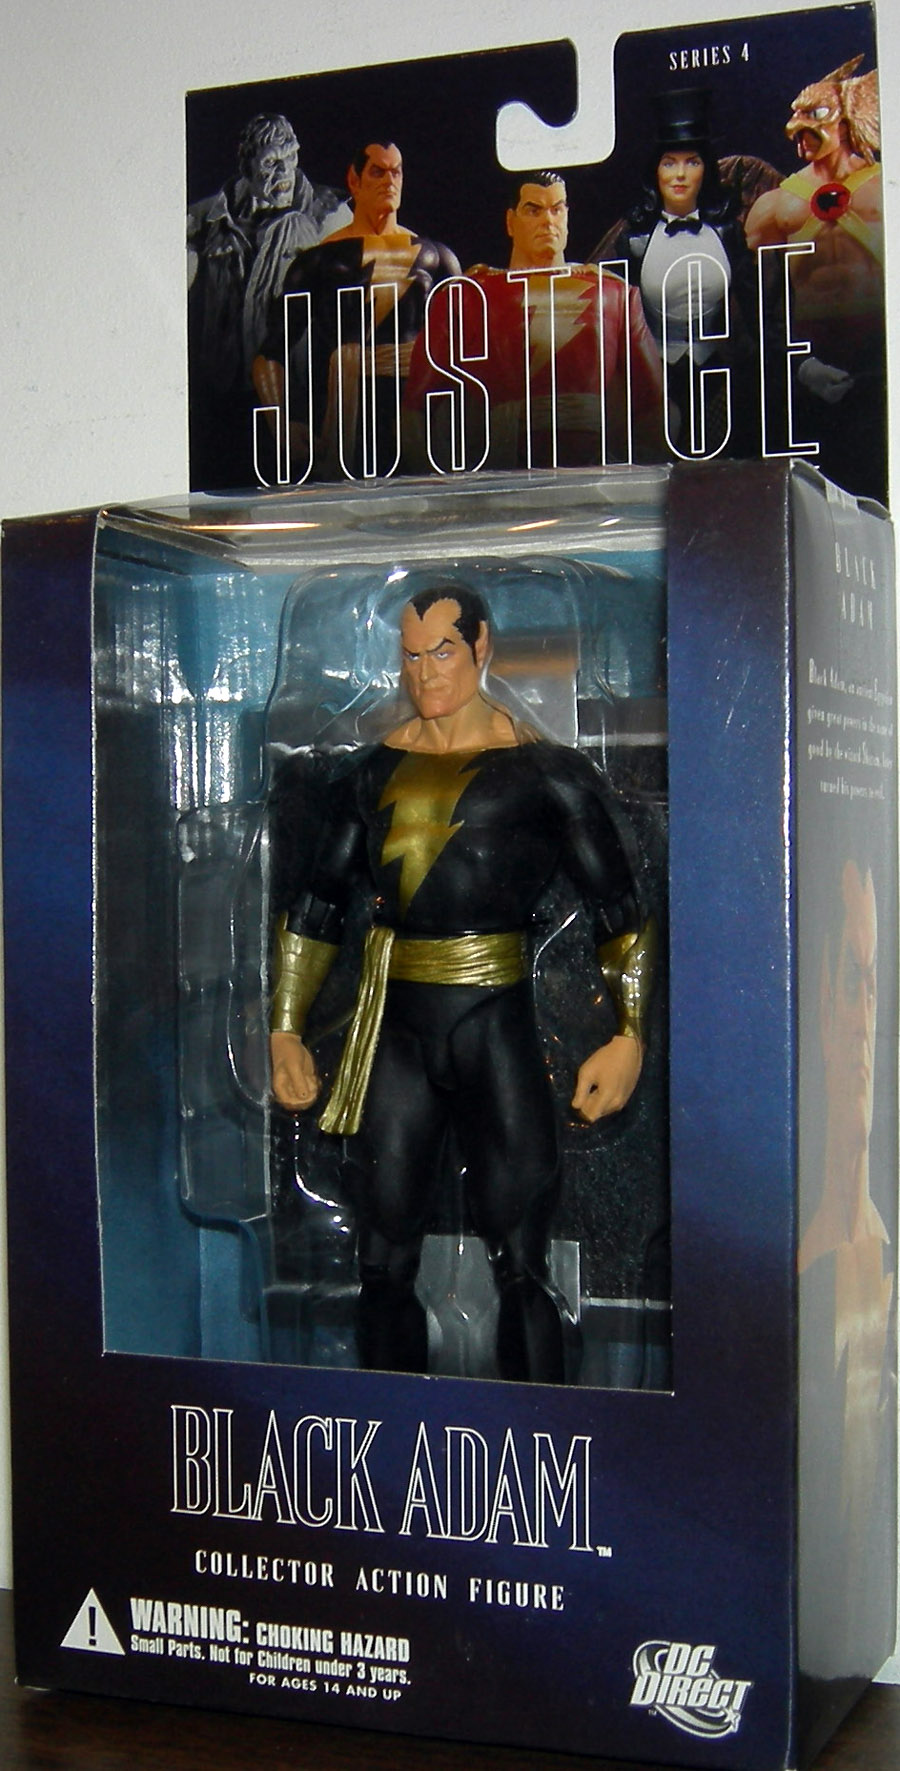 Black Adam (Alex Ross)